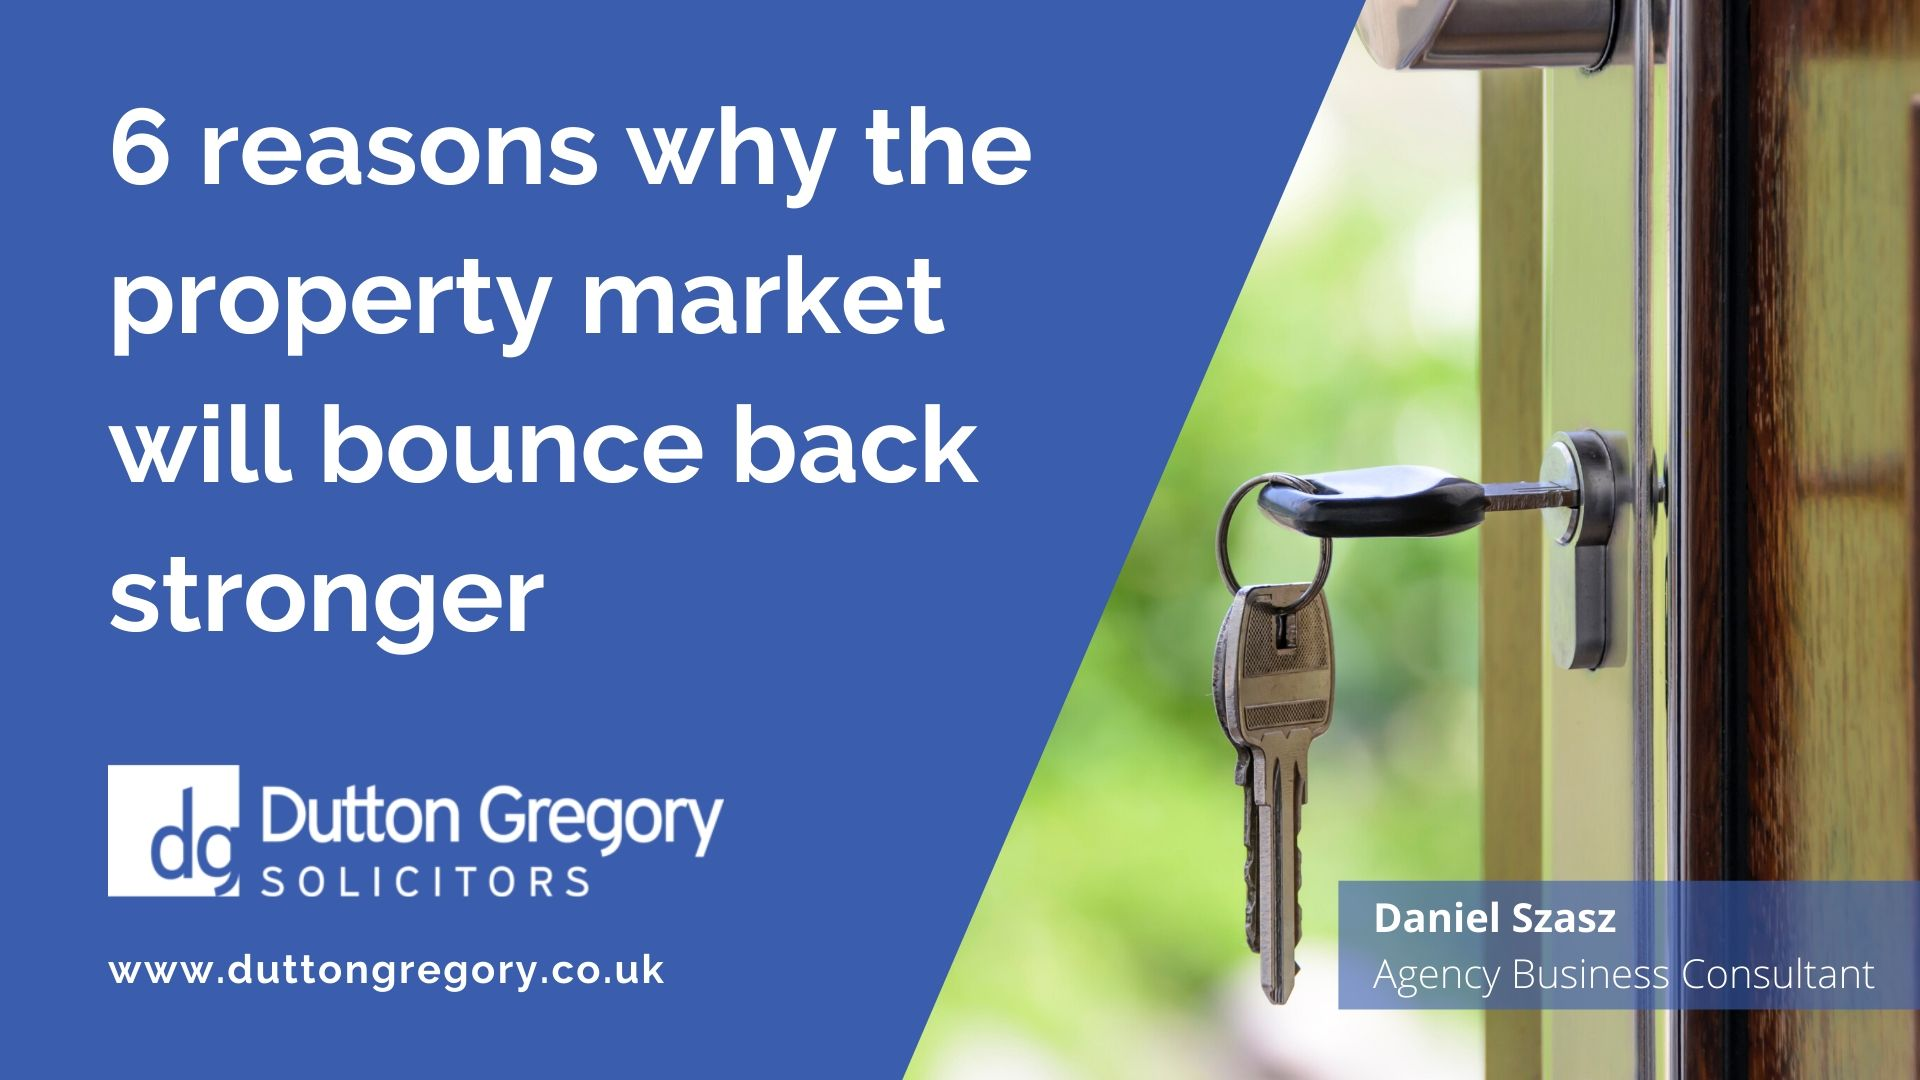 6 reasons why the property market will bounce back stronger